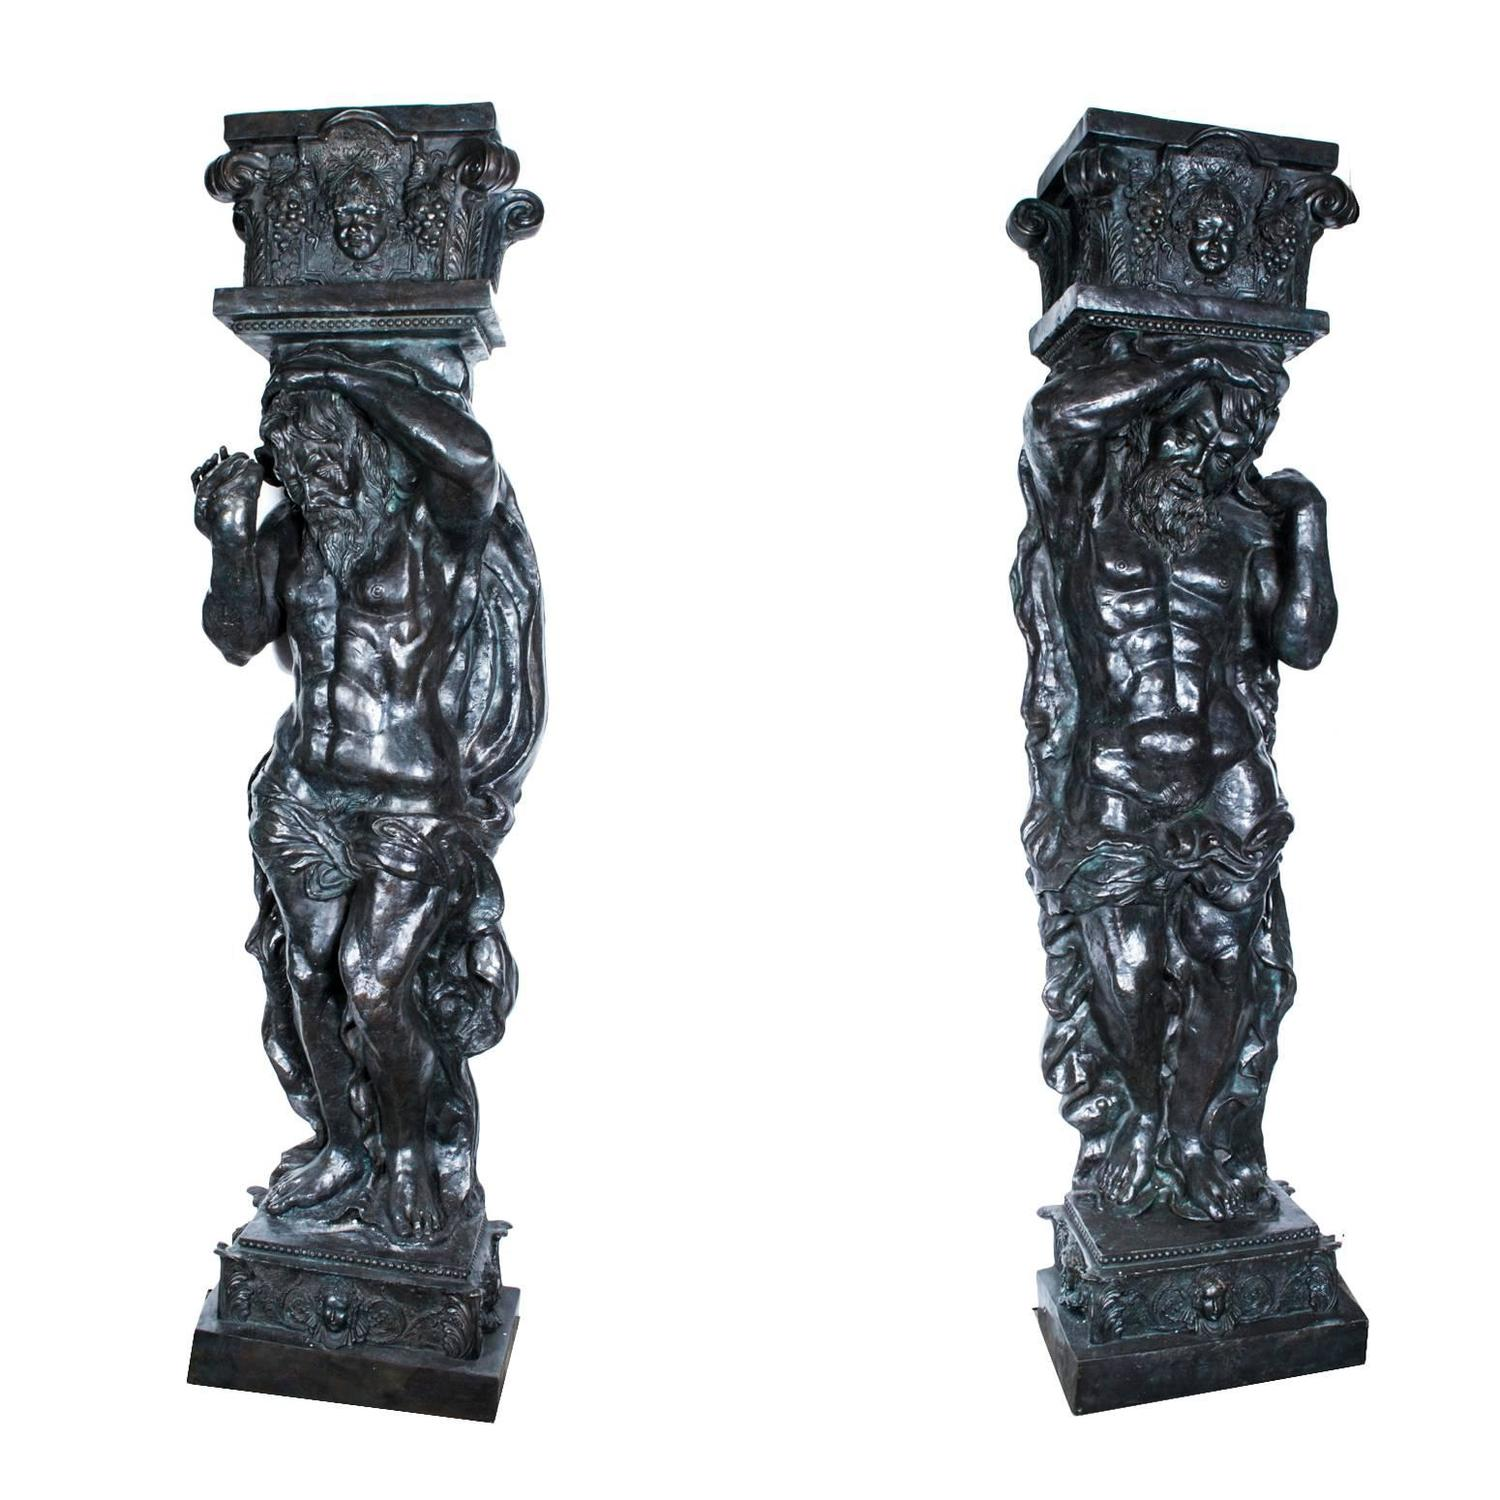 Atlas Statues For Sale Monumental Pair Of Patinated Bronze Atlas Columns For Sale